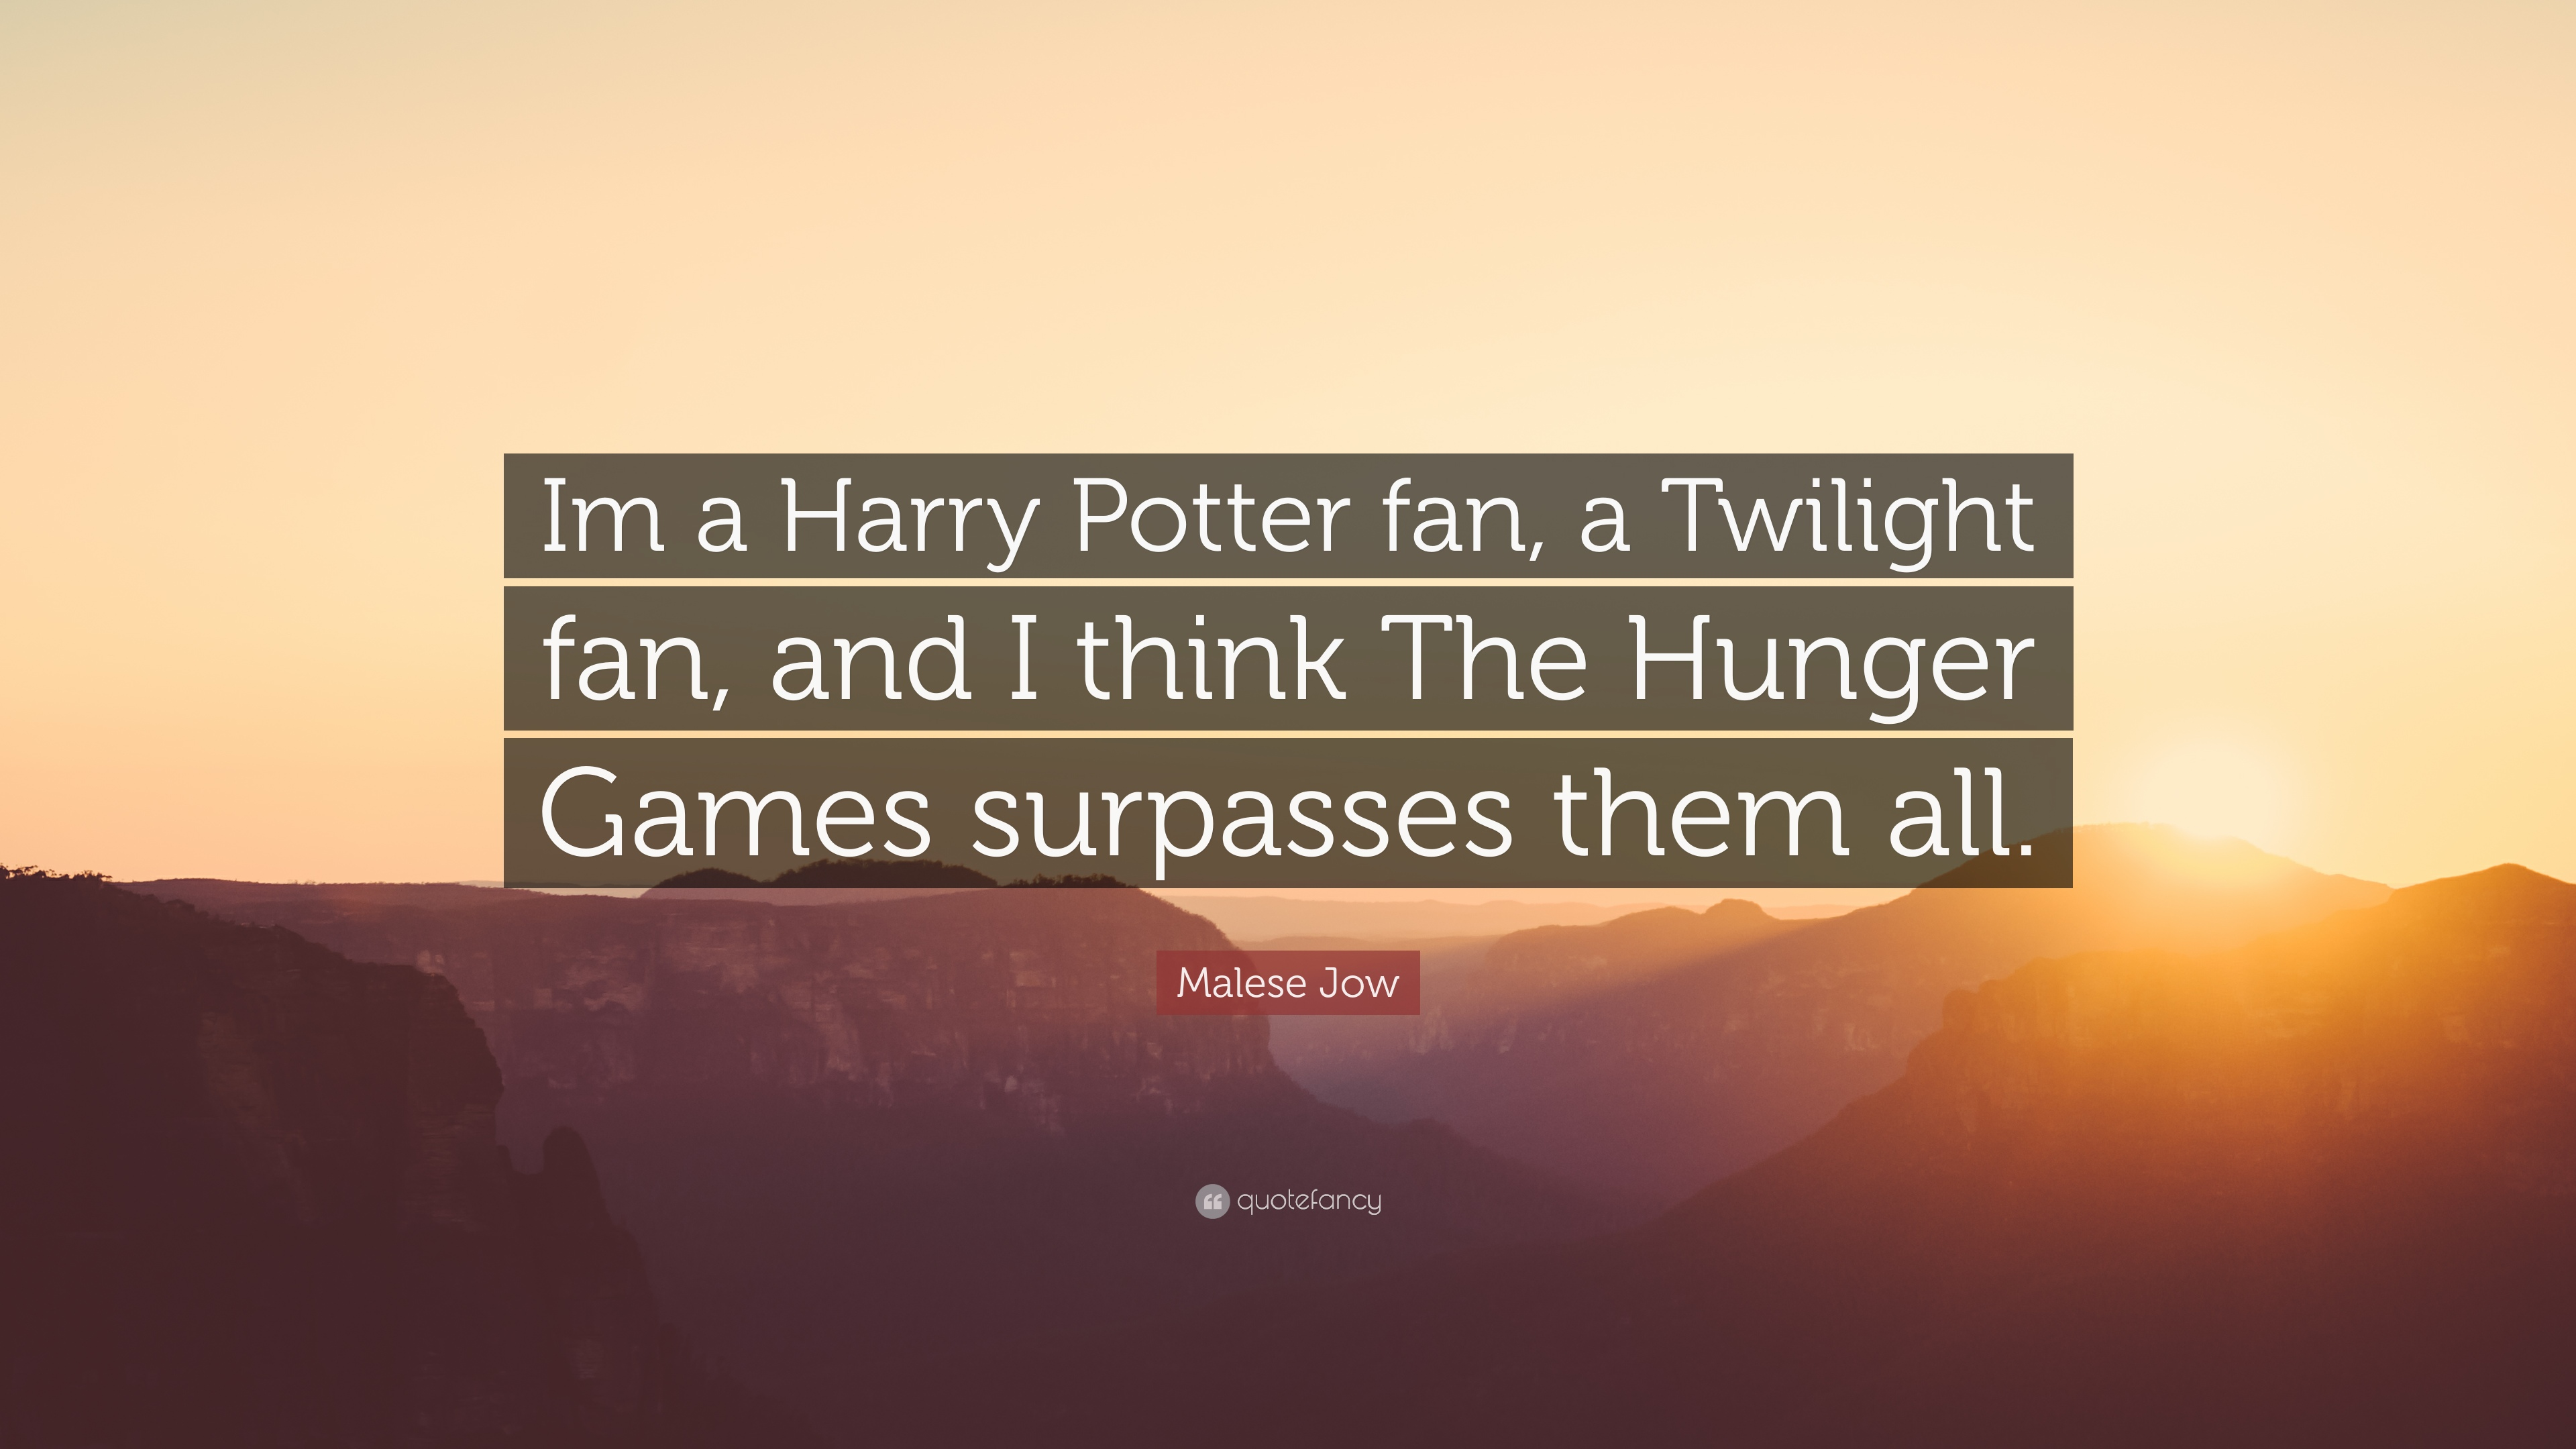 Cool Wallpaper Harry Potter Hunger Games - 1657437-Malese-Jow-Quote-Im-a-Harry-Potter-fan-a-Twilight-fan-and-I-think  Picture_809689.jpg